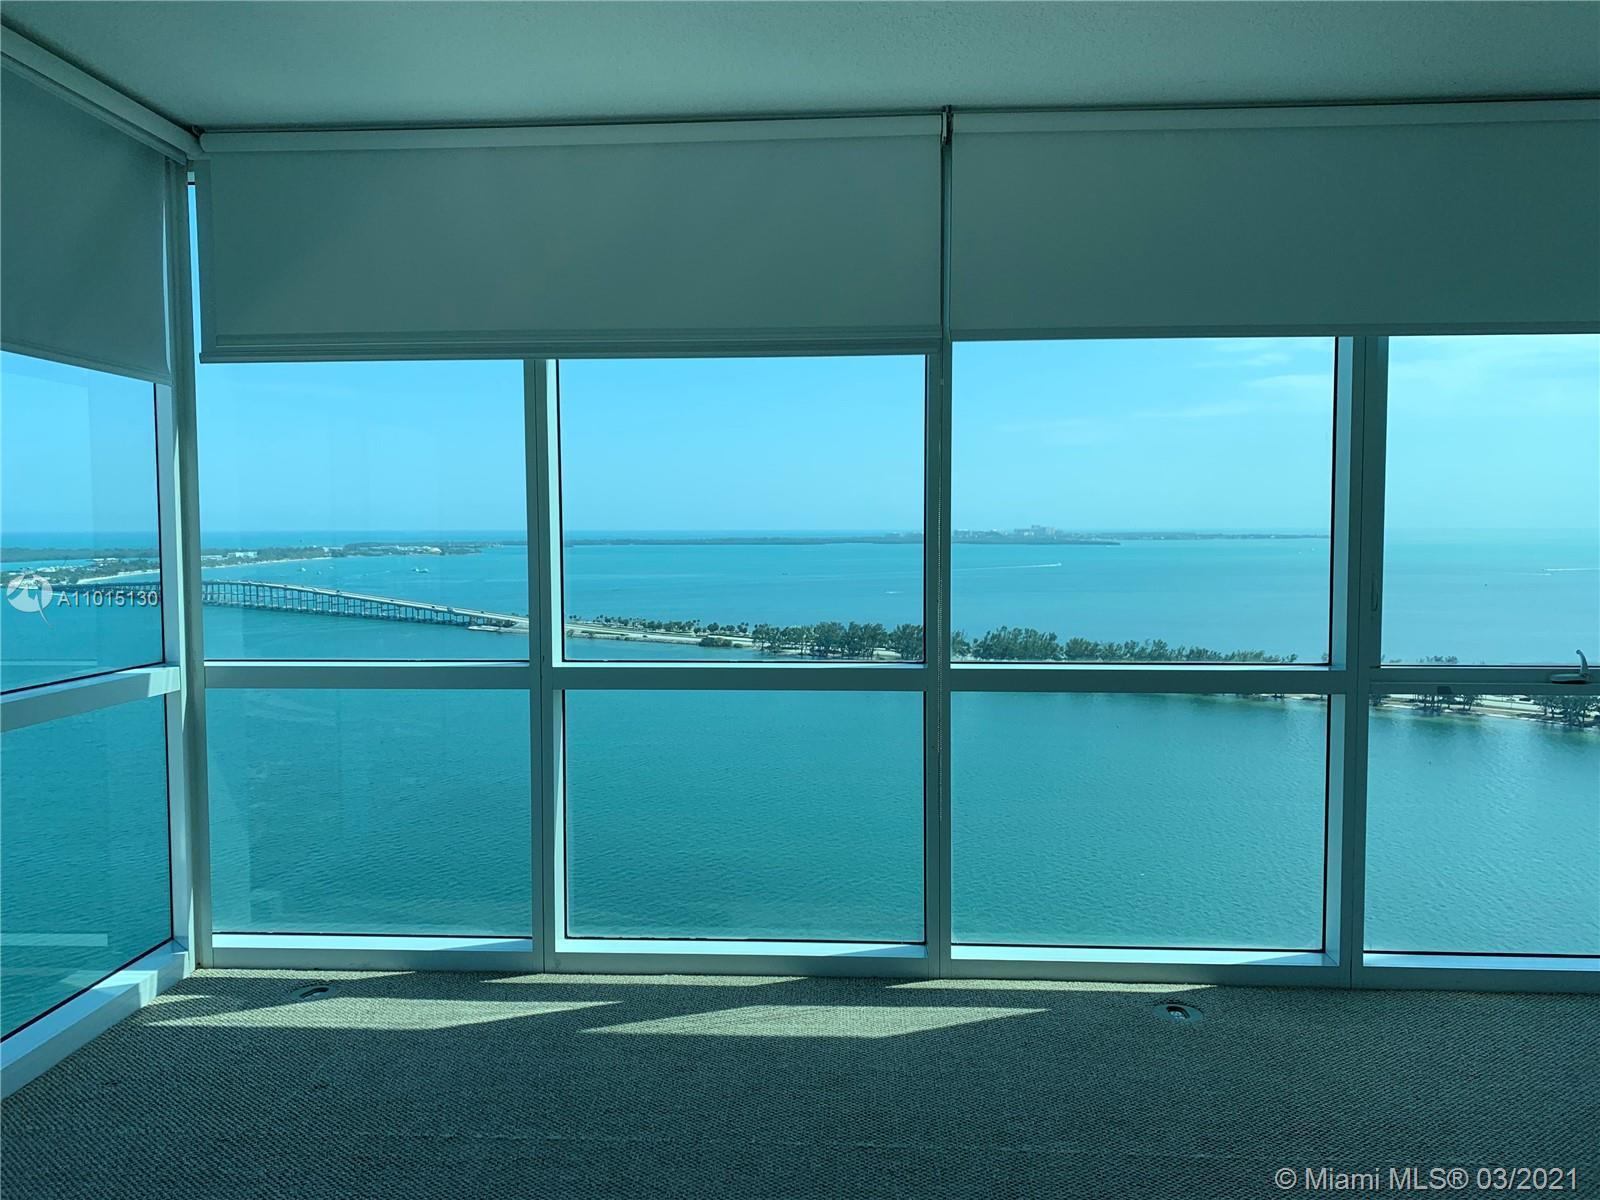 JUST LISTED!! BEAUTIFUL AND SPACIOUS 3 BED 3 BATH WITH SPECTACULAR DIRECT OCEAN AND BAY VIEWS. MARBL